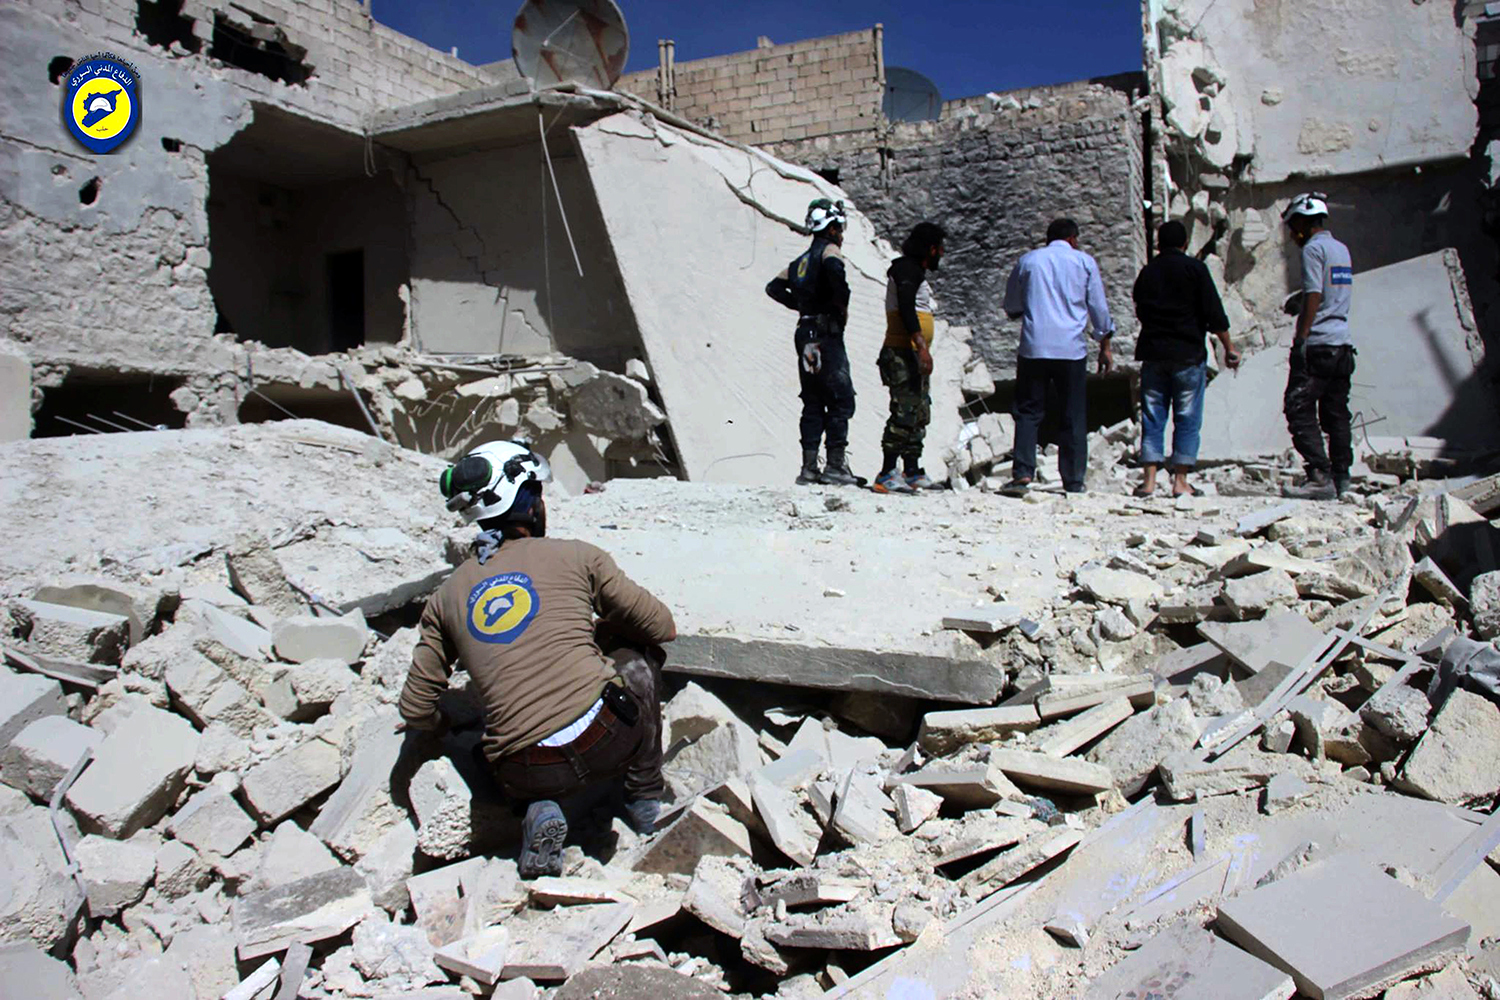 "This photo provided by the Syrian Civil Defense group known as the White Helmets, shows members of Civil Defense inspecting damaged buildings after airstrikes hit the Bustan al-Qasr neighborhood of Aleppo, Syria, Sunday, Sept. 25, 2016. A broad coalition of Syrian rebels denounced international negotiations for peace as ""meaningless"" on Sunday, as the U.N. Security Council prepared to convene an emergency meeting about the spiraling violence in Syria. (Syrian Civil Defense White Helmets via AP)"